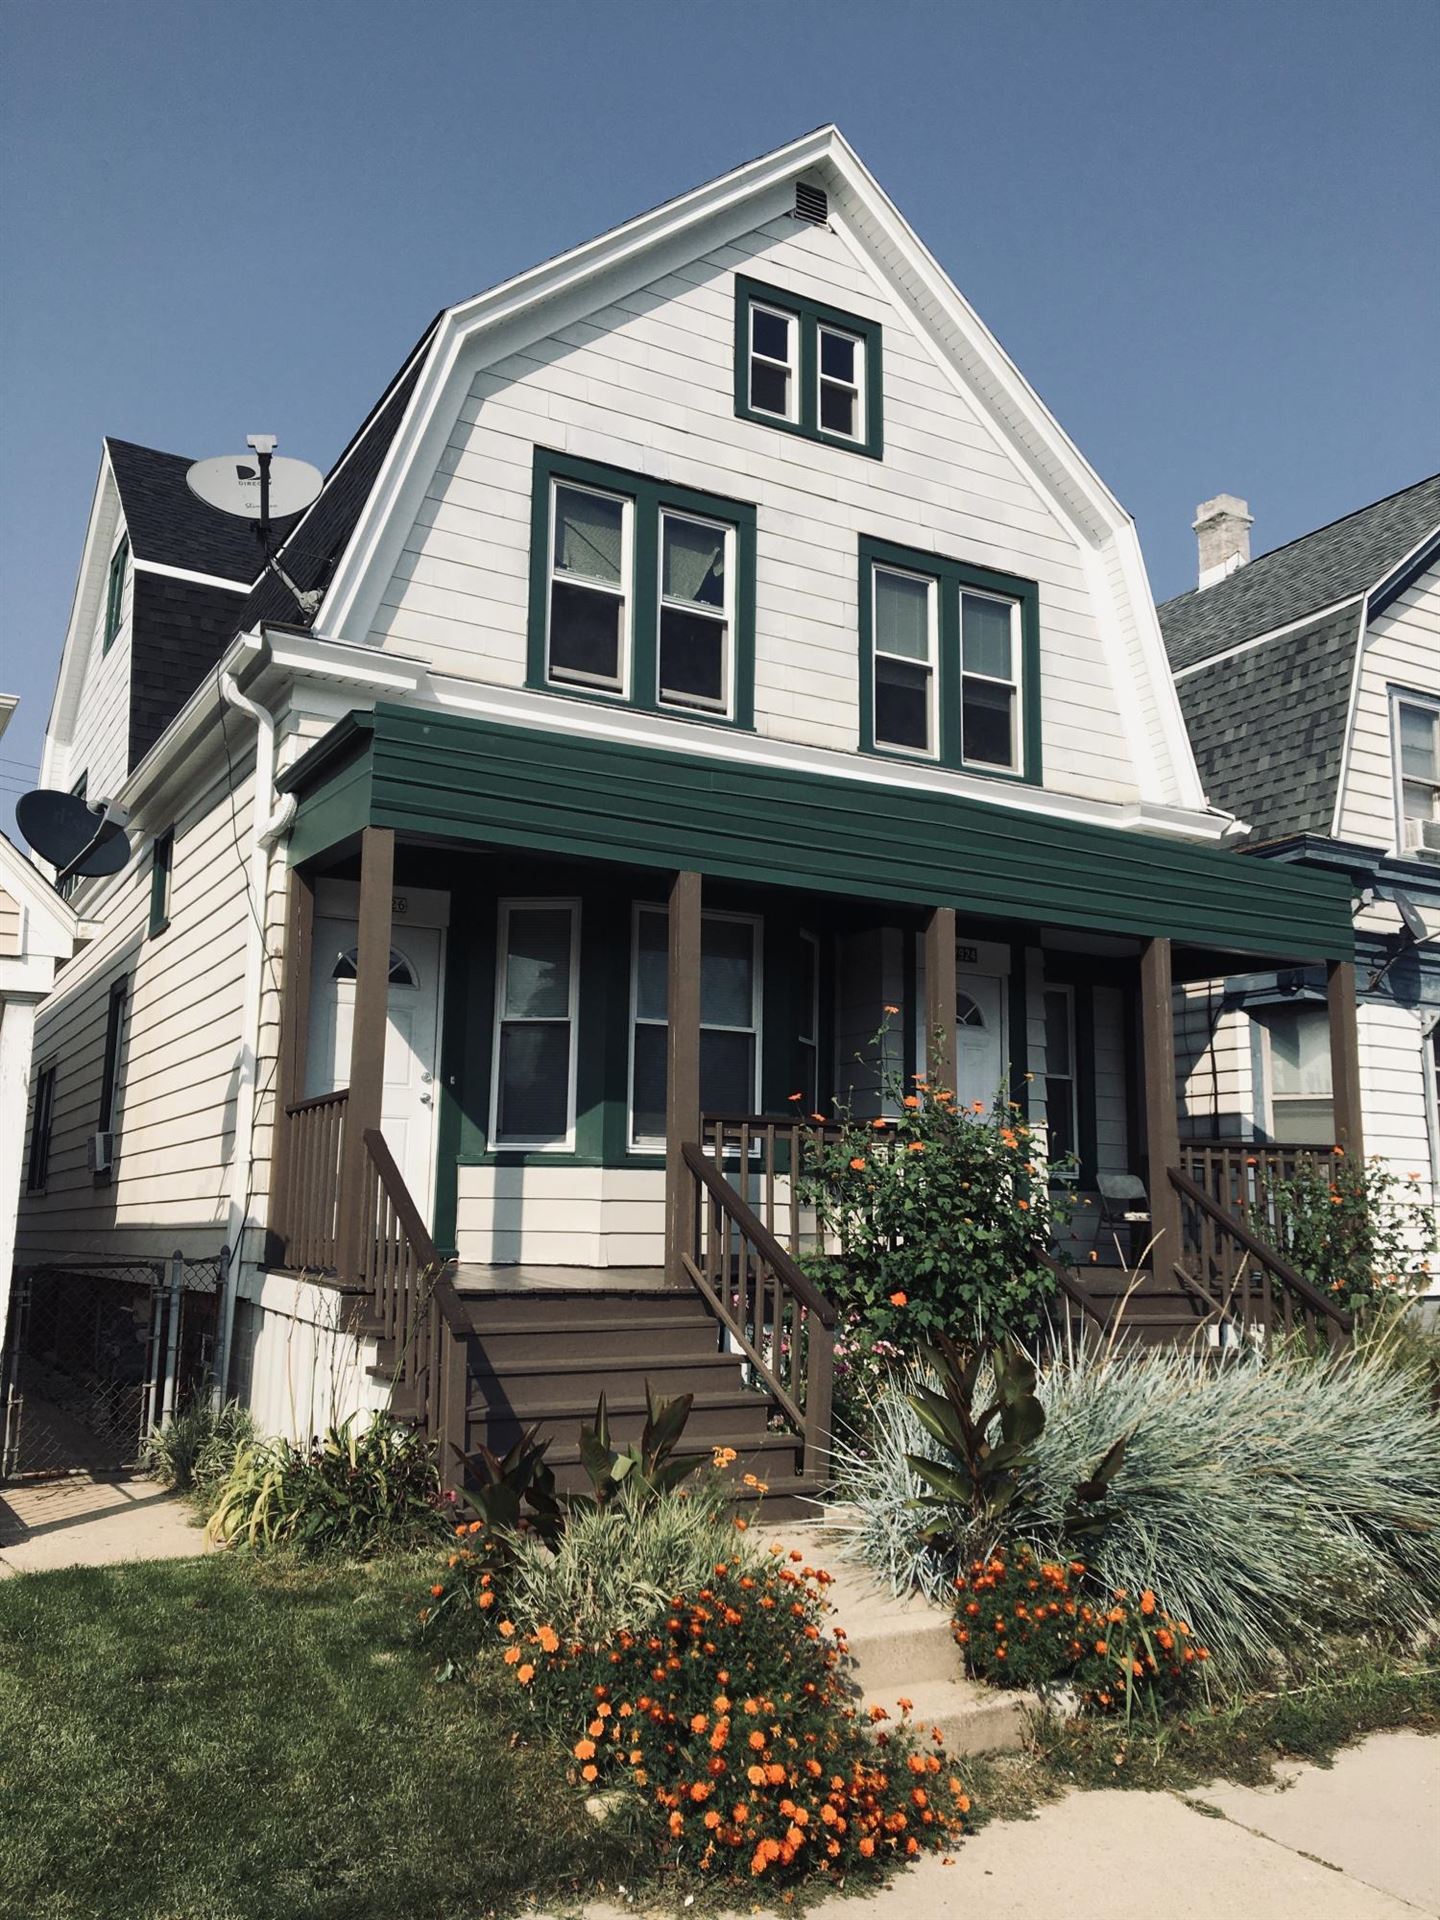 2924 W Lincoln Ave #2926, Milwaukee, WI 53215 - #: 1710334